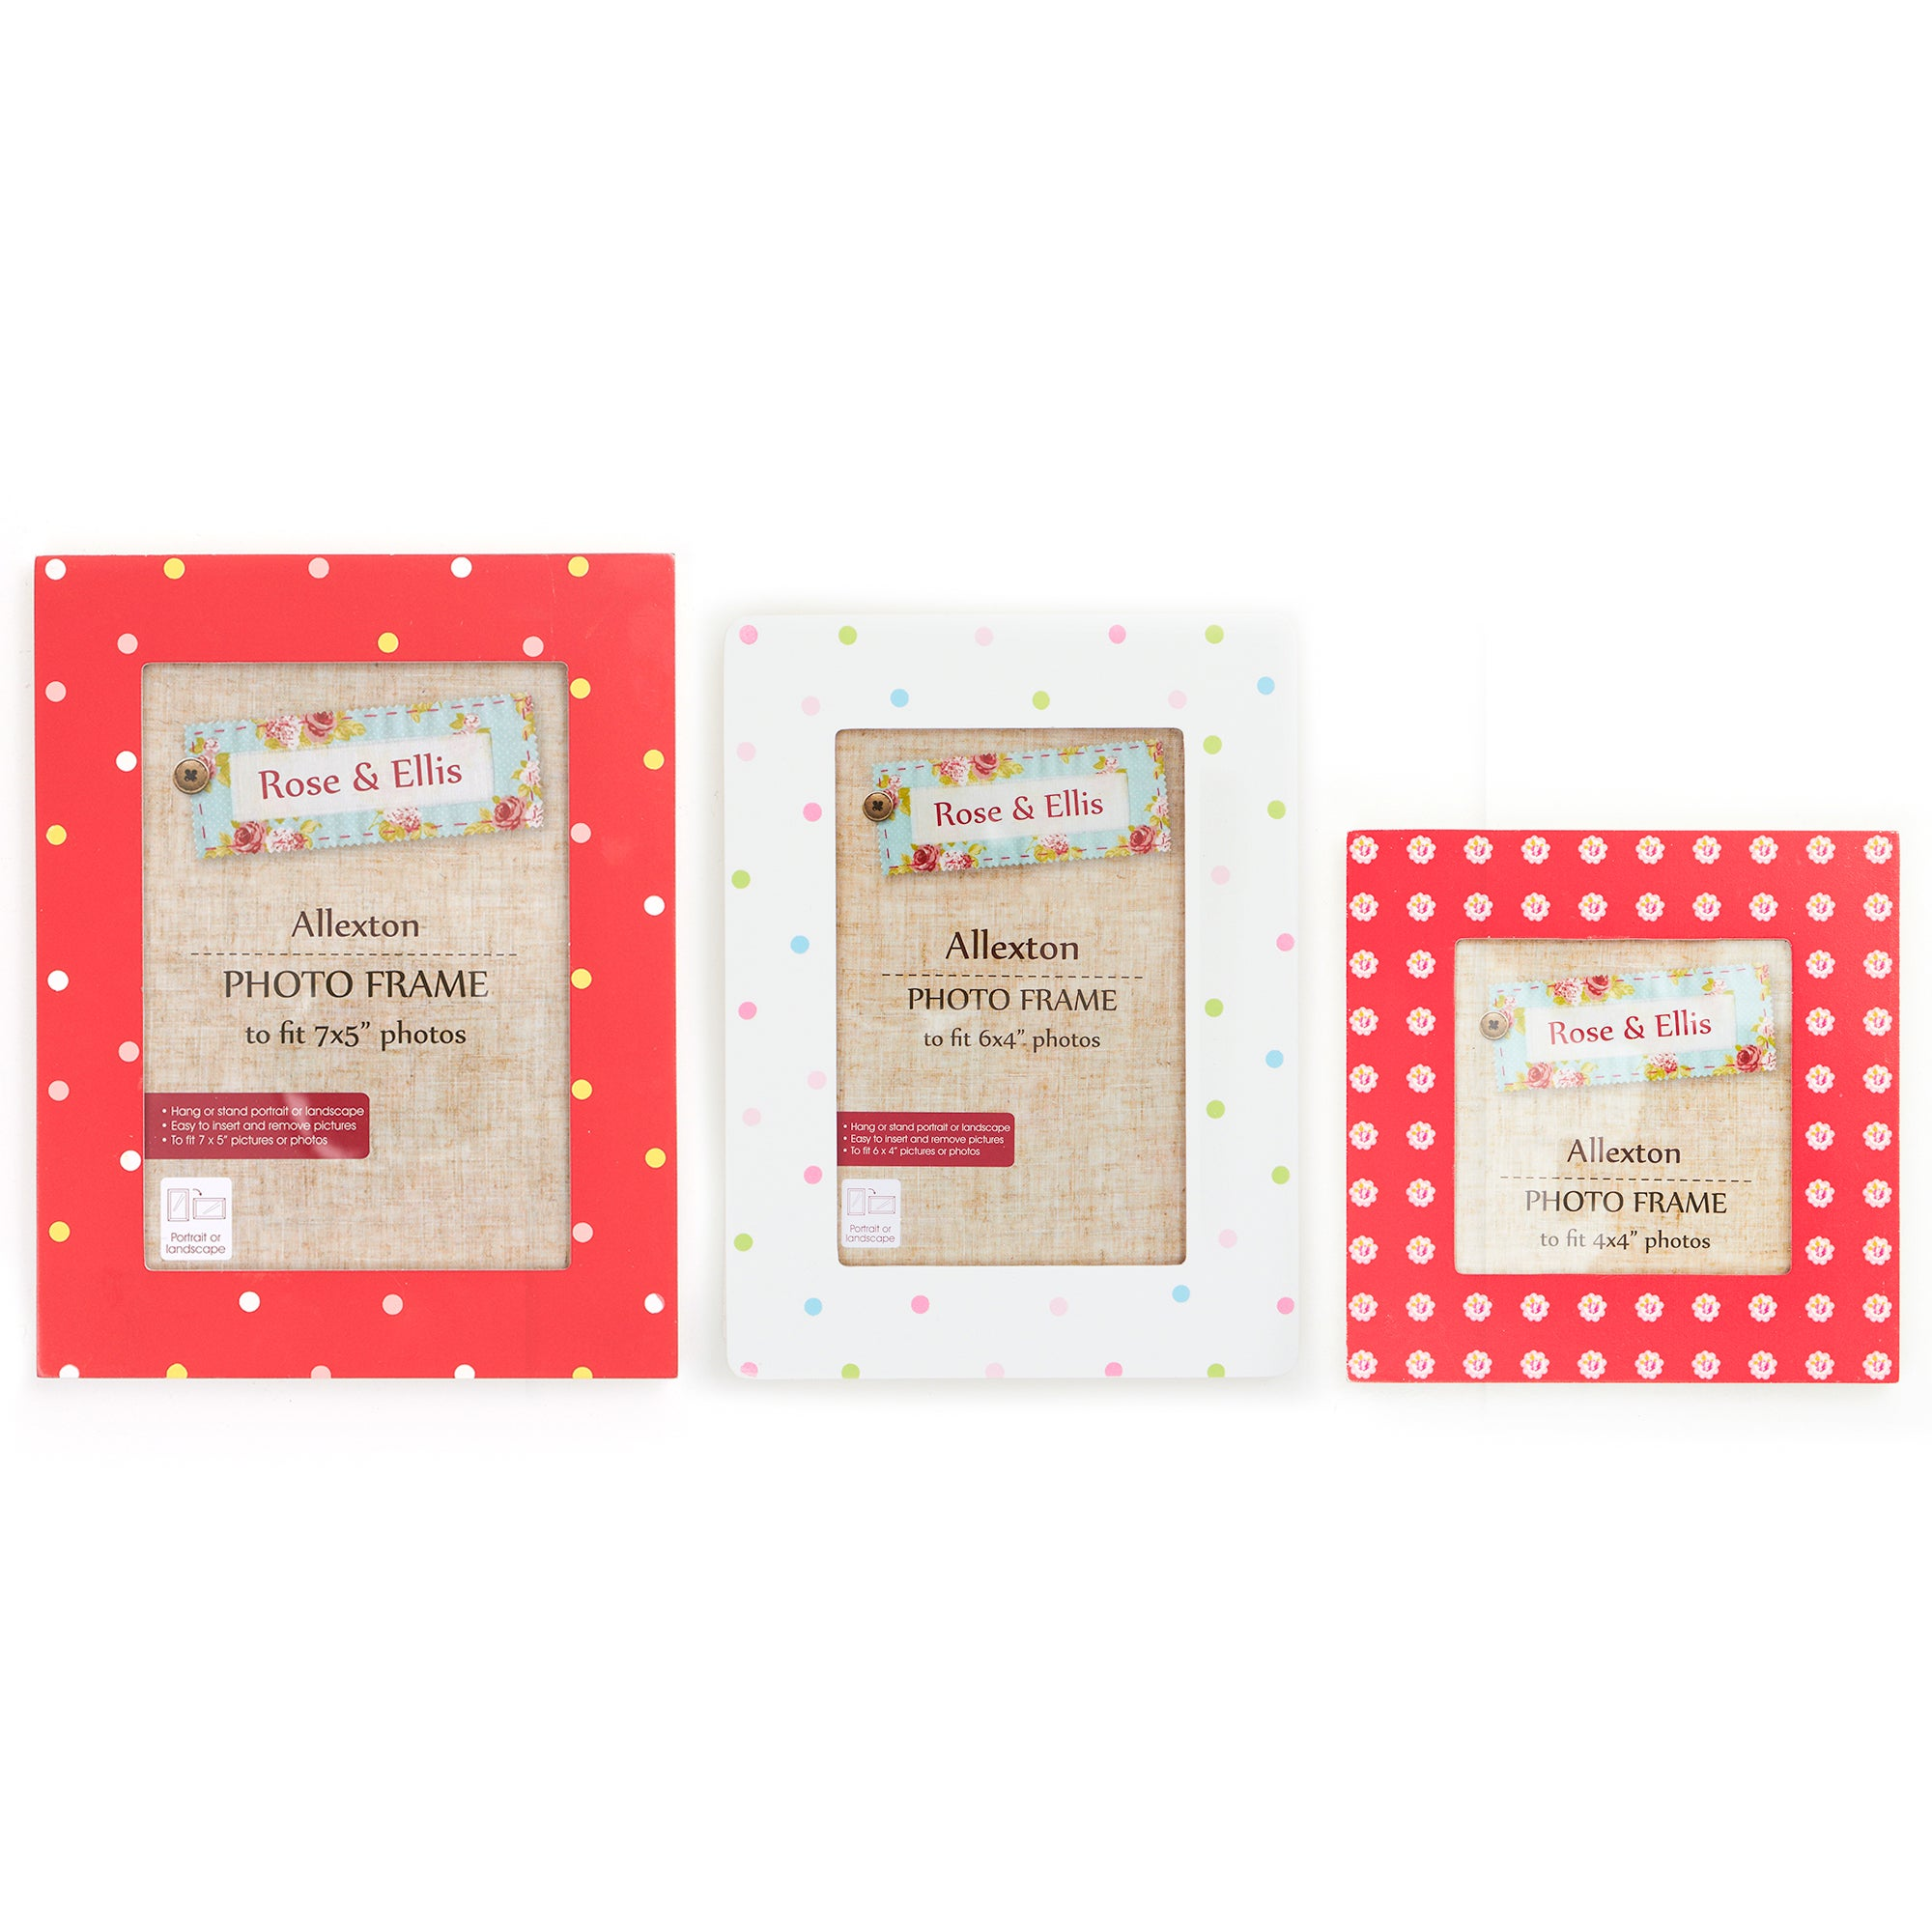 Rose & Ellis Allexton Collection Photo Frames